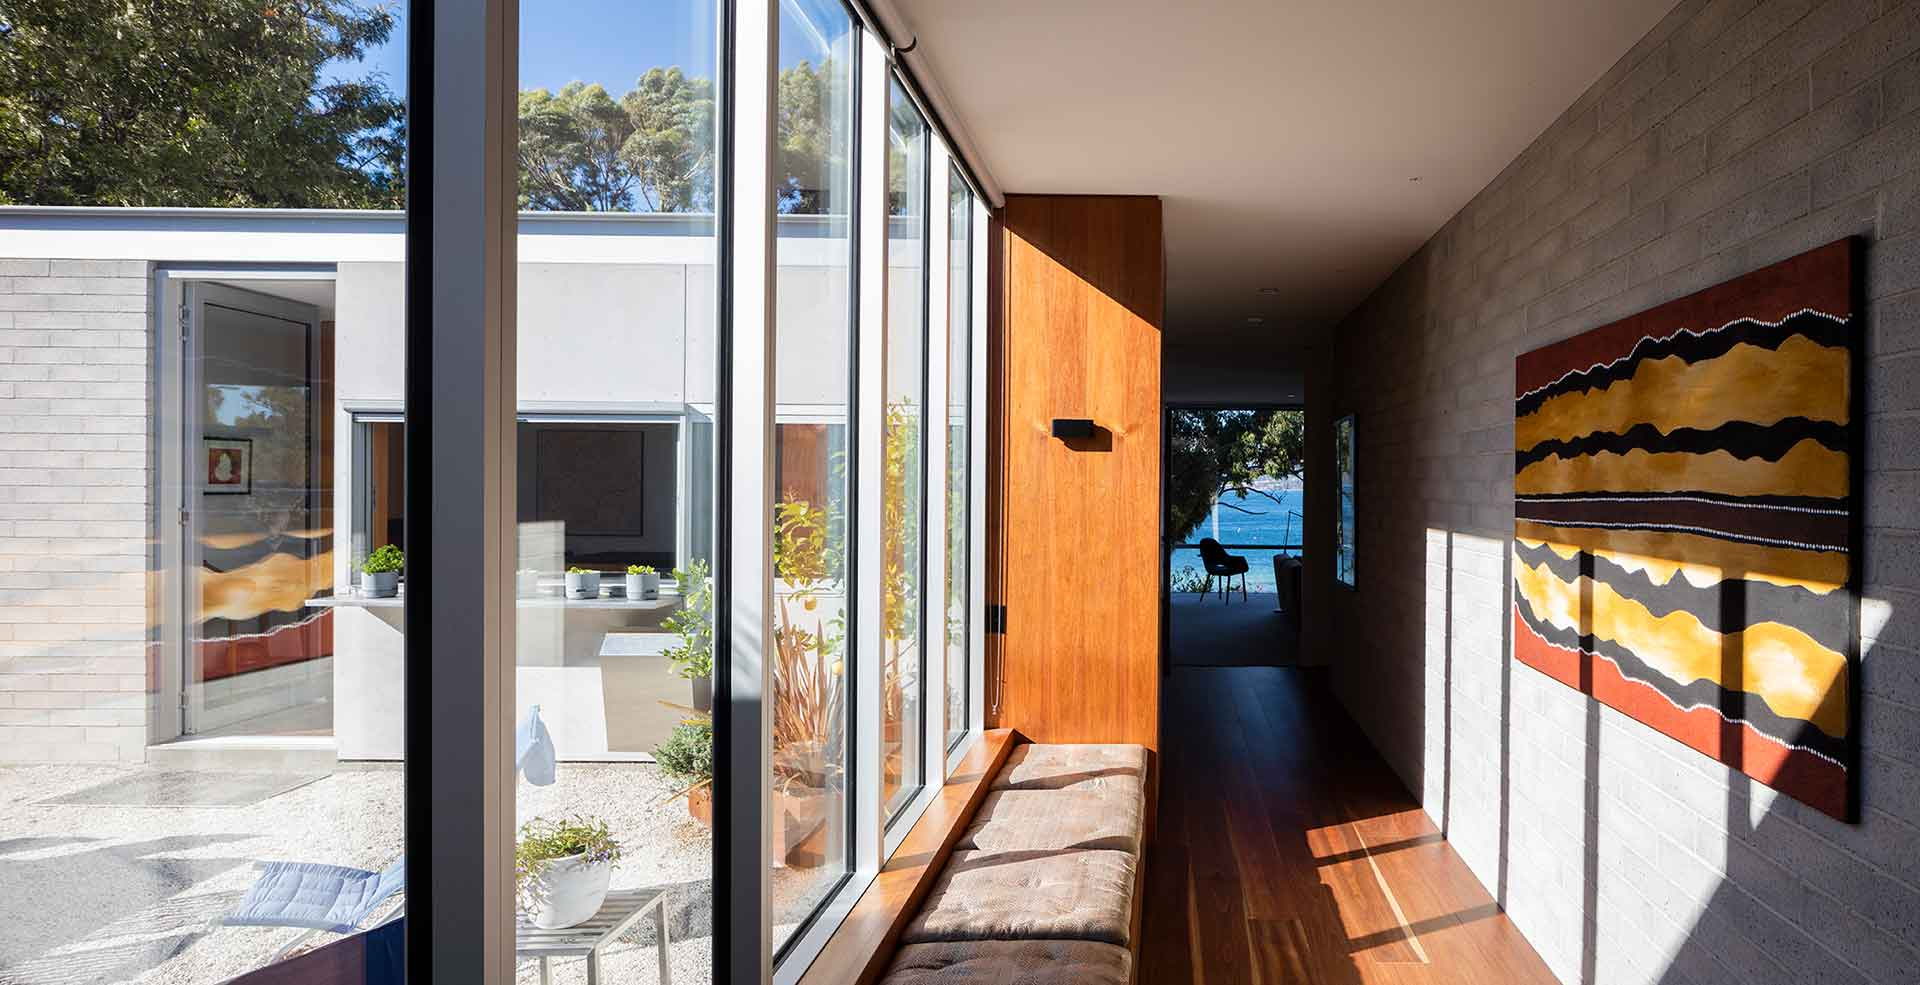 Gallery Of Elms House By Stuart Tanner Architects Local Australian Contemporary Architecture & Interiors Tasmania Image 17